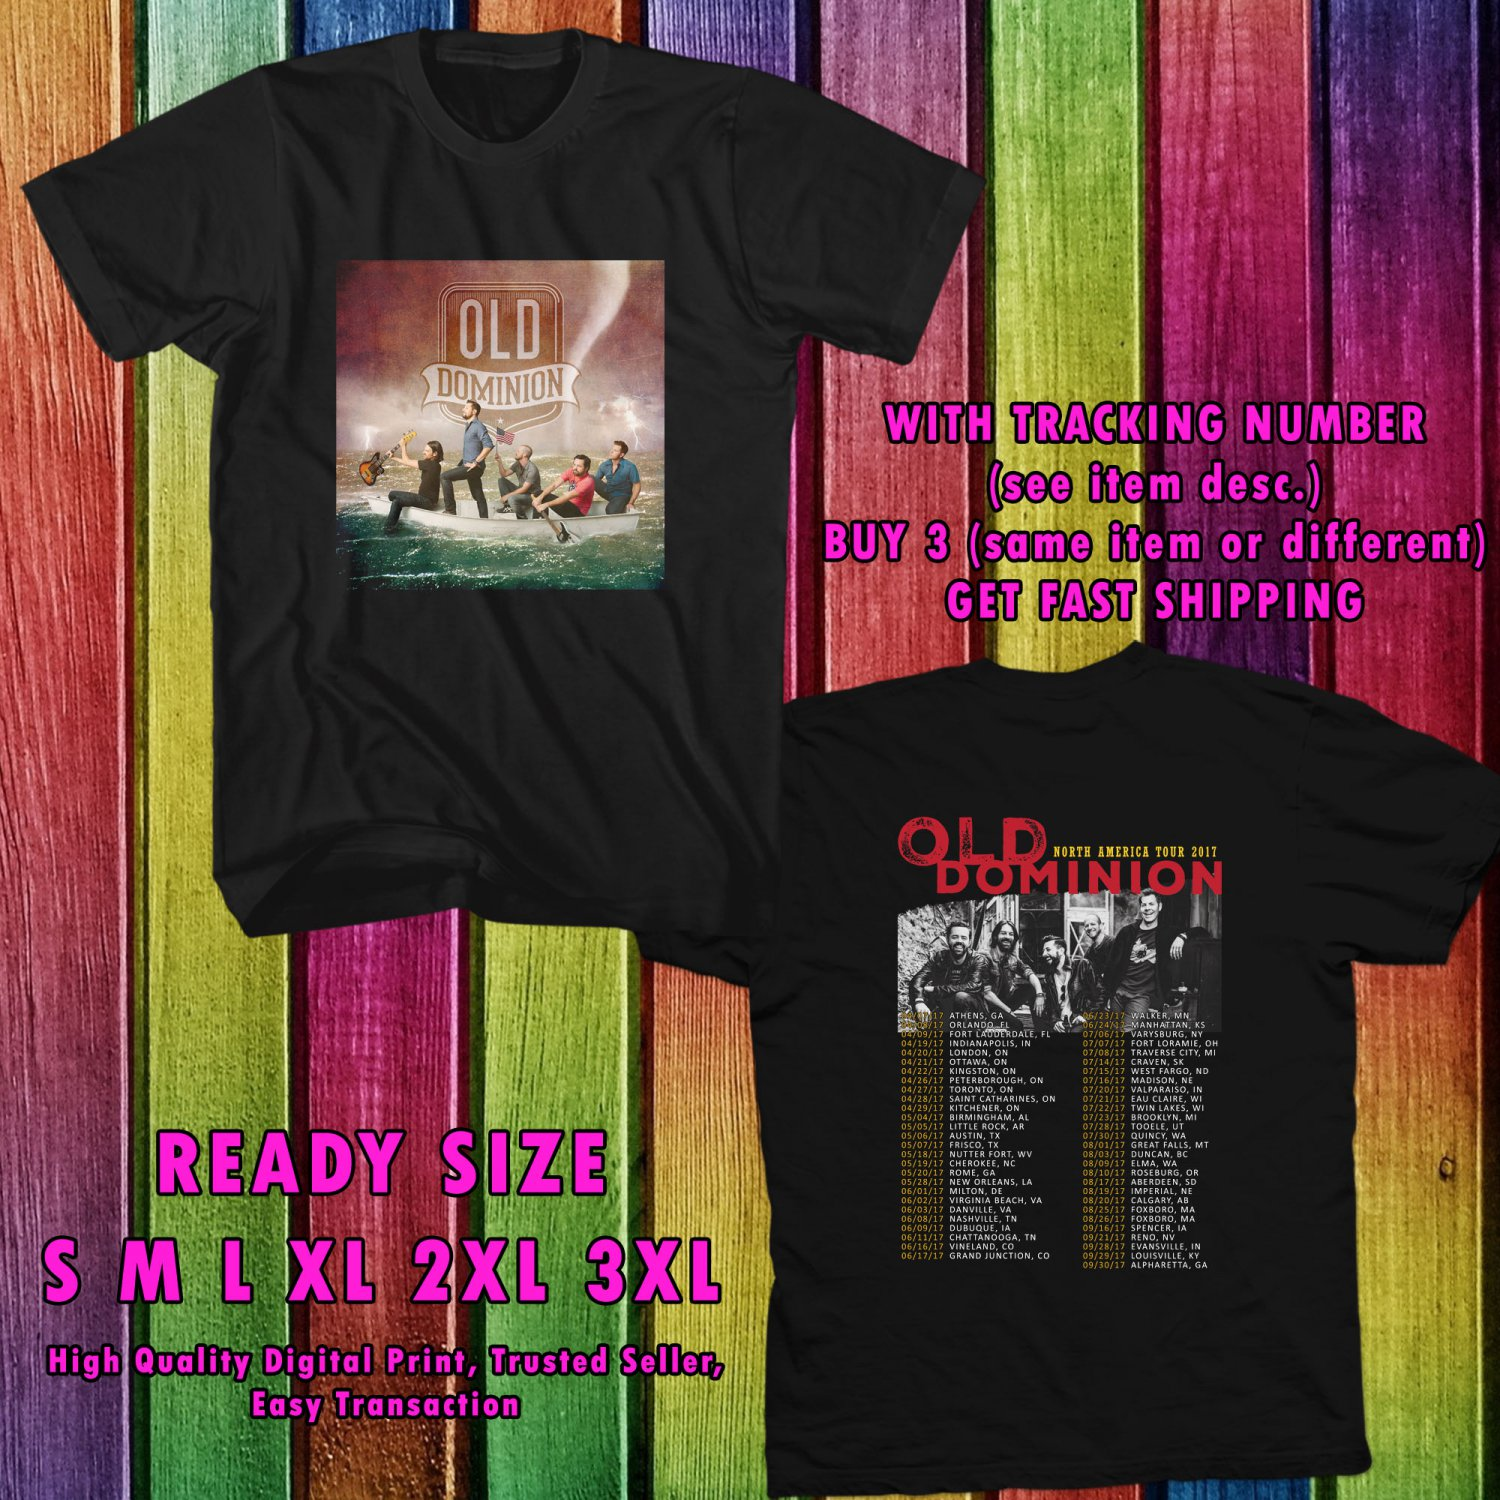 NEW OLD DOMINION NOSUCHTHINGASBROKEN HEART TOUR 2017 BLACK TEE 2 SIDE DMTR